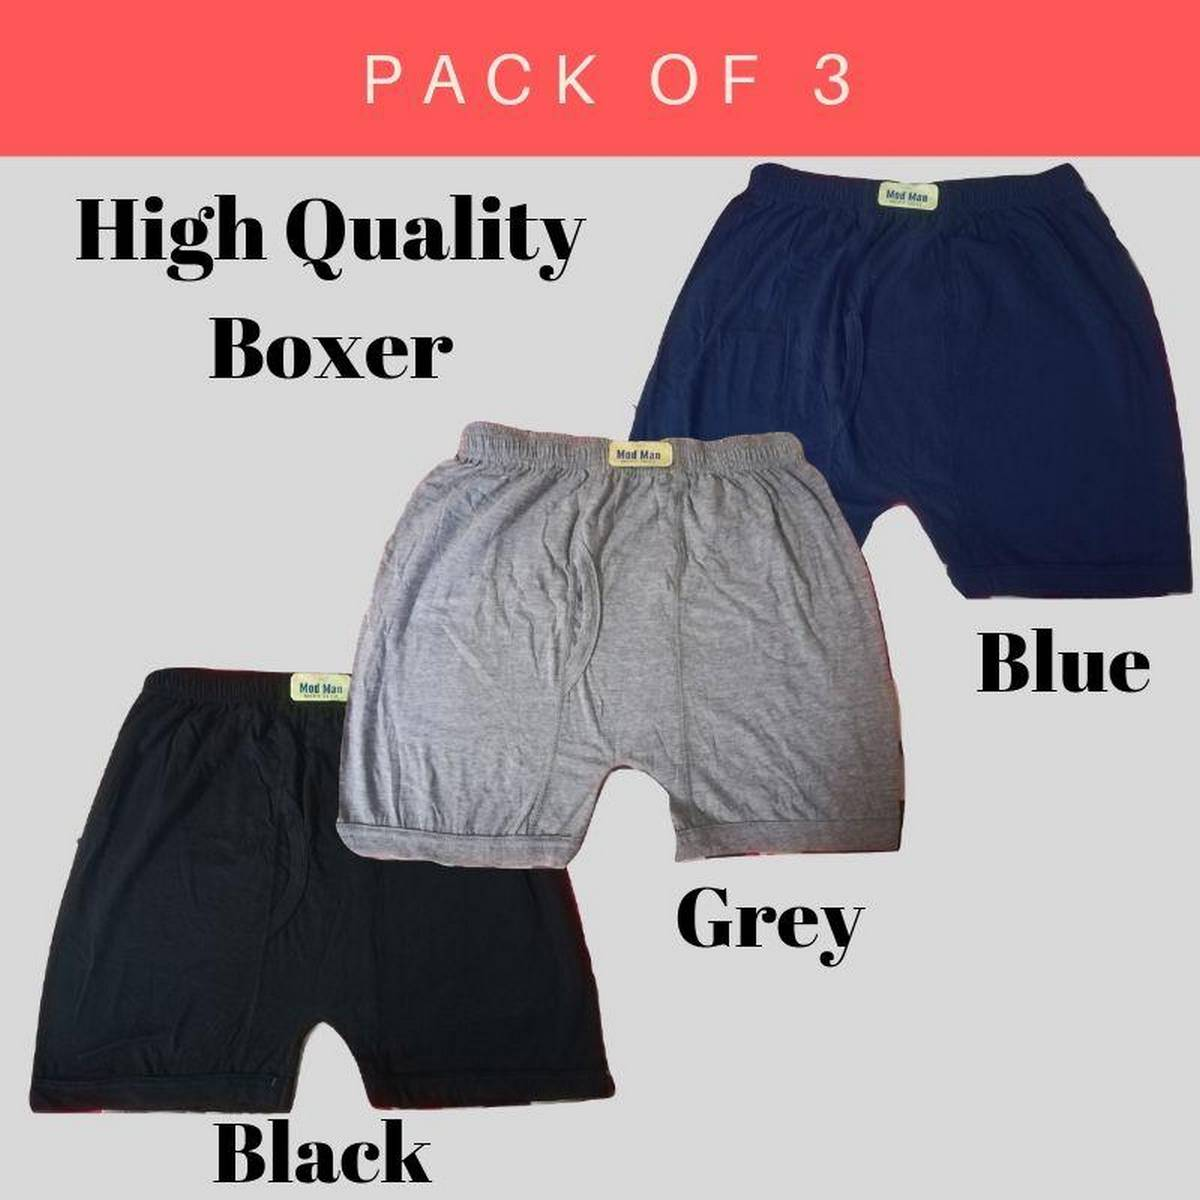 Multi Color Boxers/Trunks for Men - Pack of 3